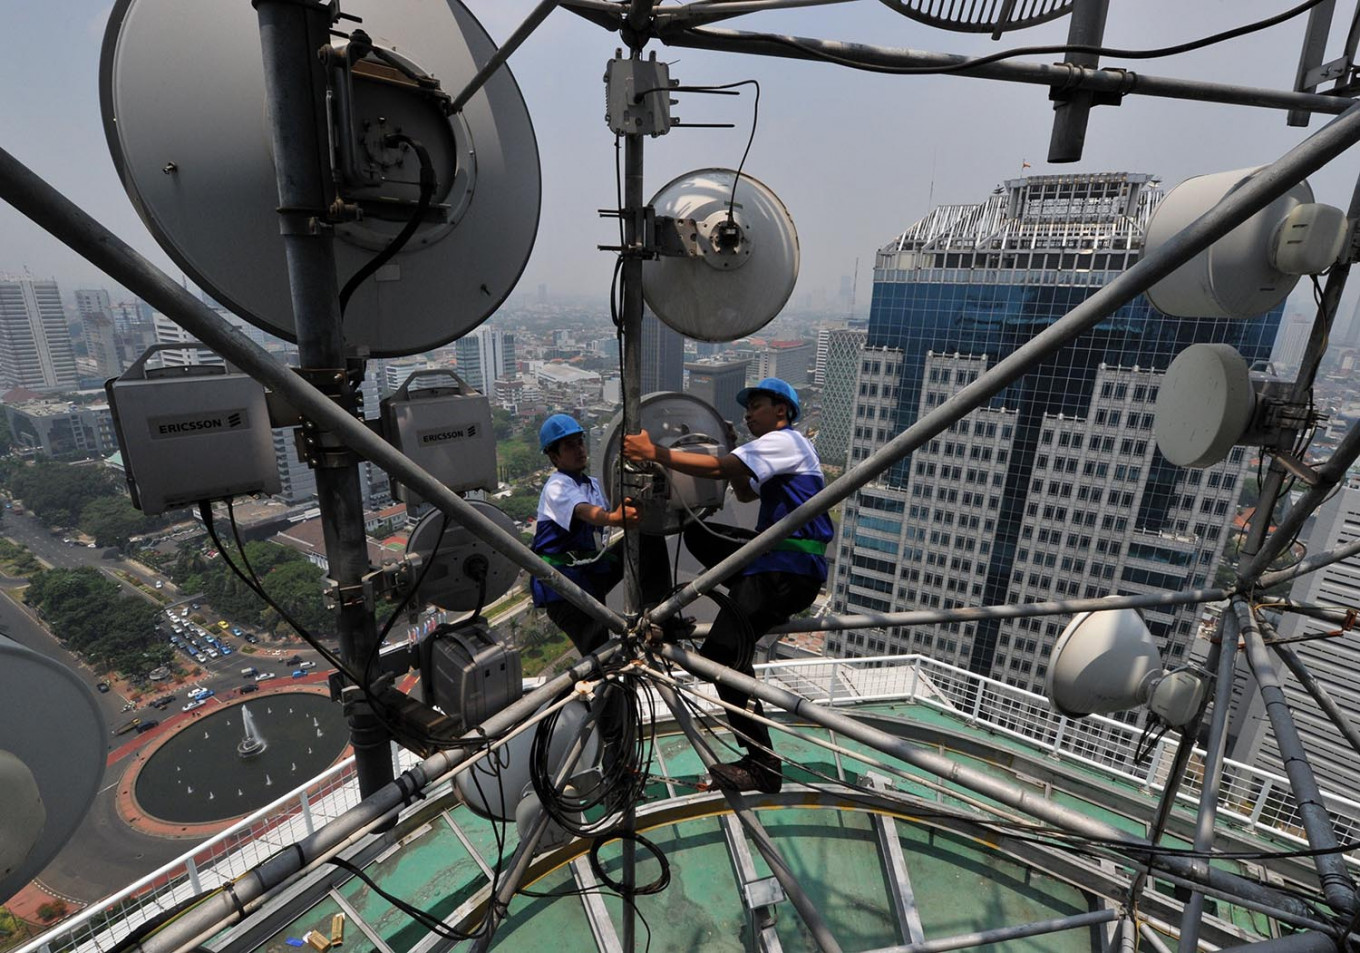 Indosat's losses double in Q1 amid organization rightsizing